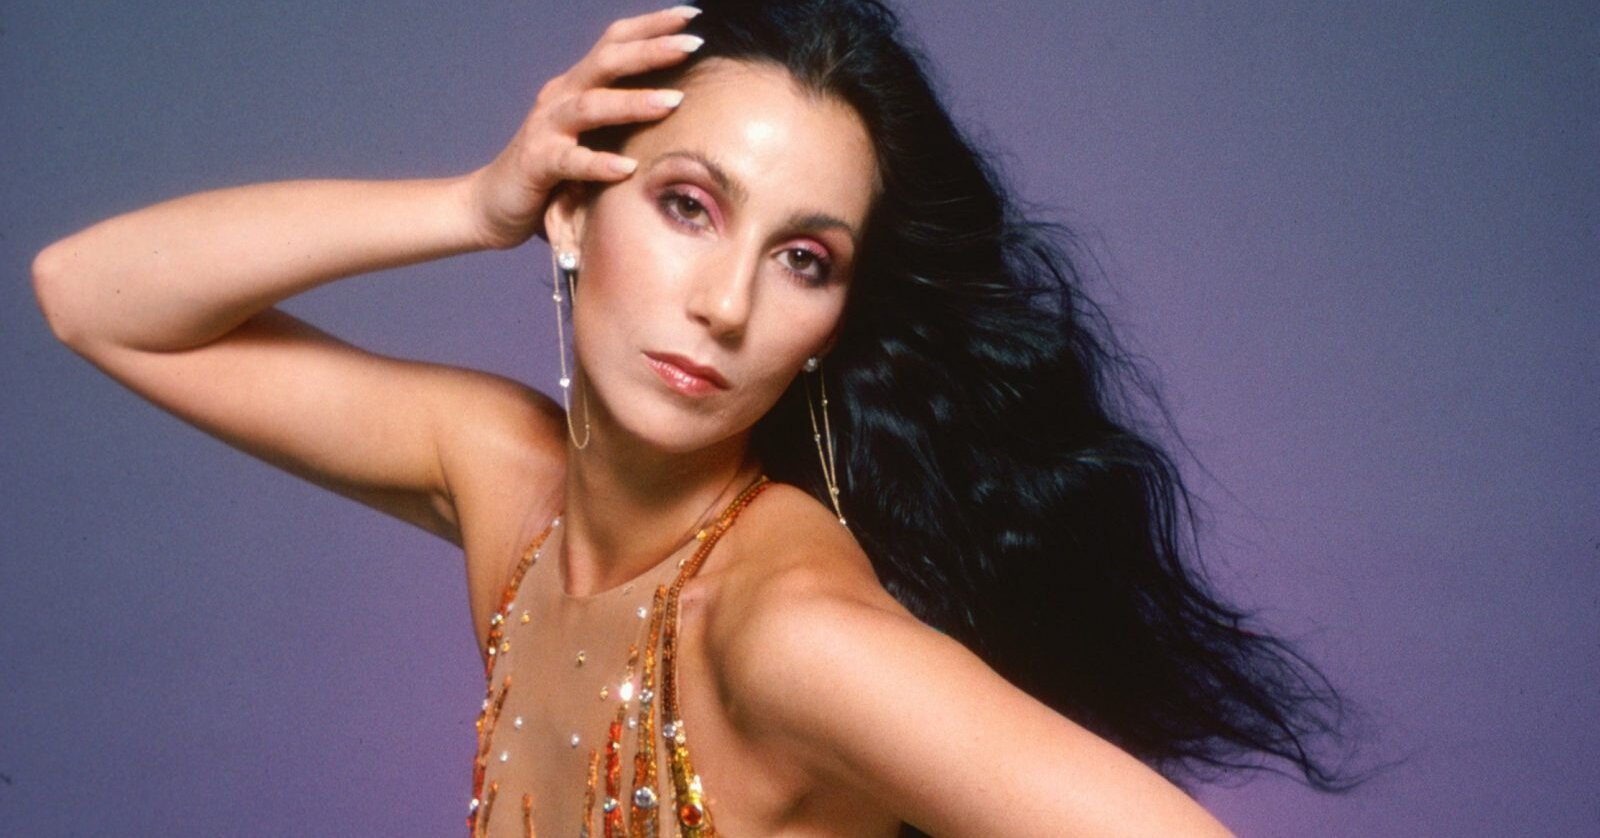 Happy Birthday, Cher! 'Turn Back Time' With These Photos of Her Most Iconic Outfits